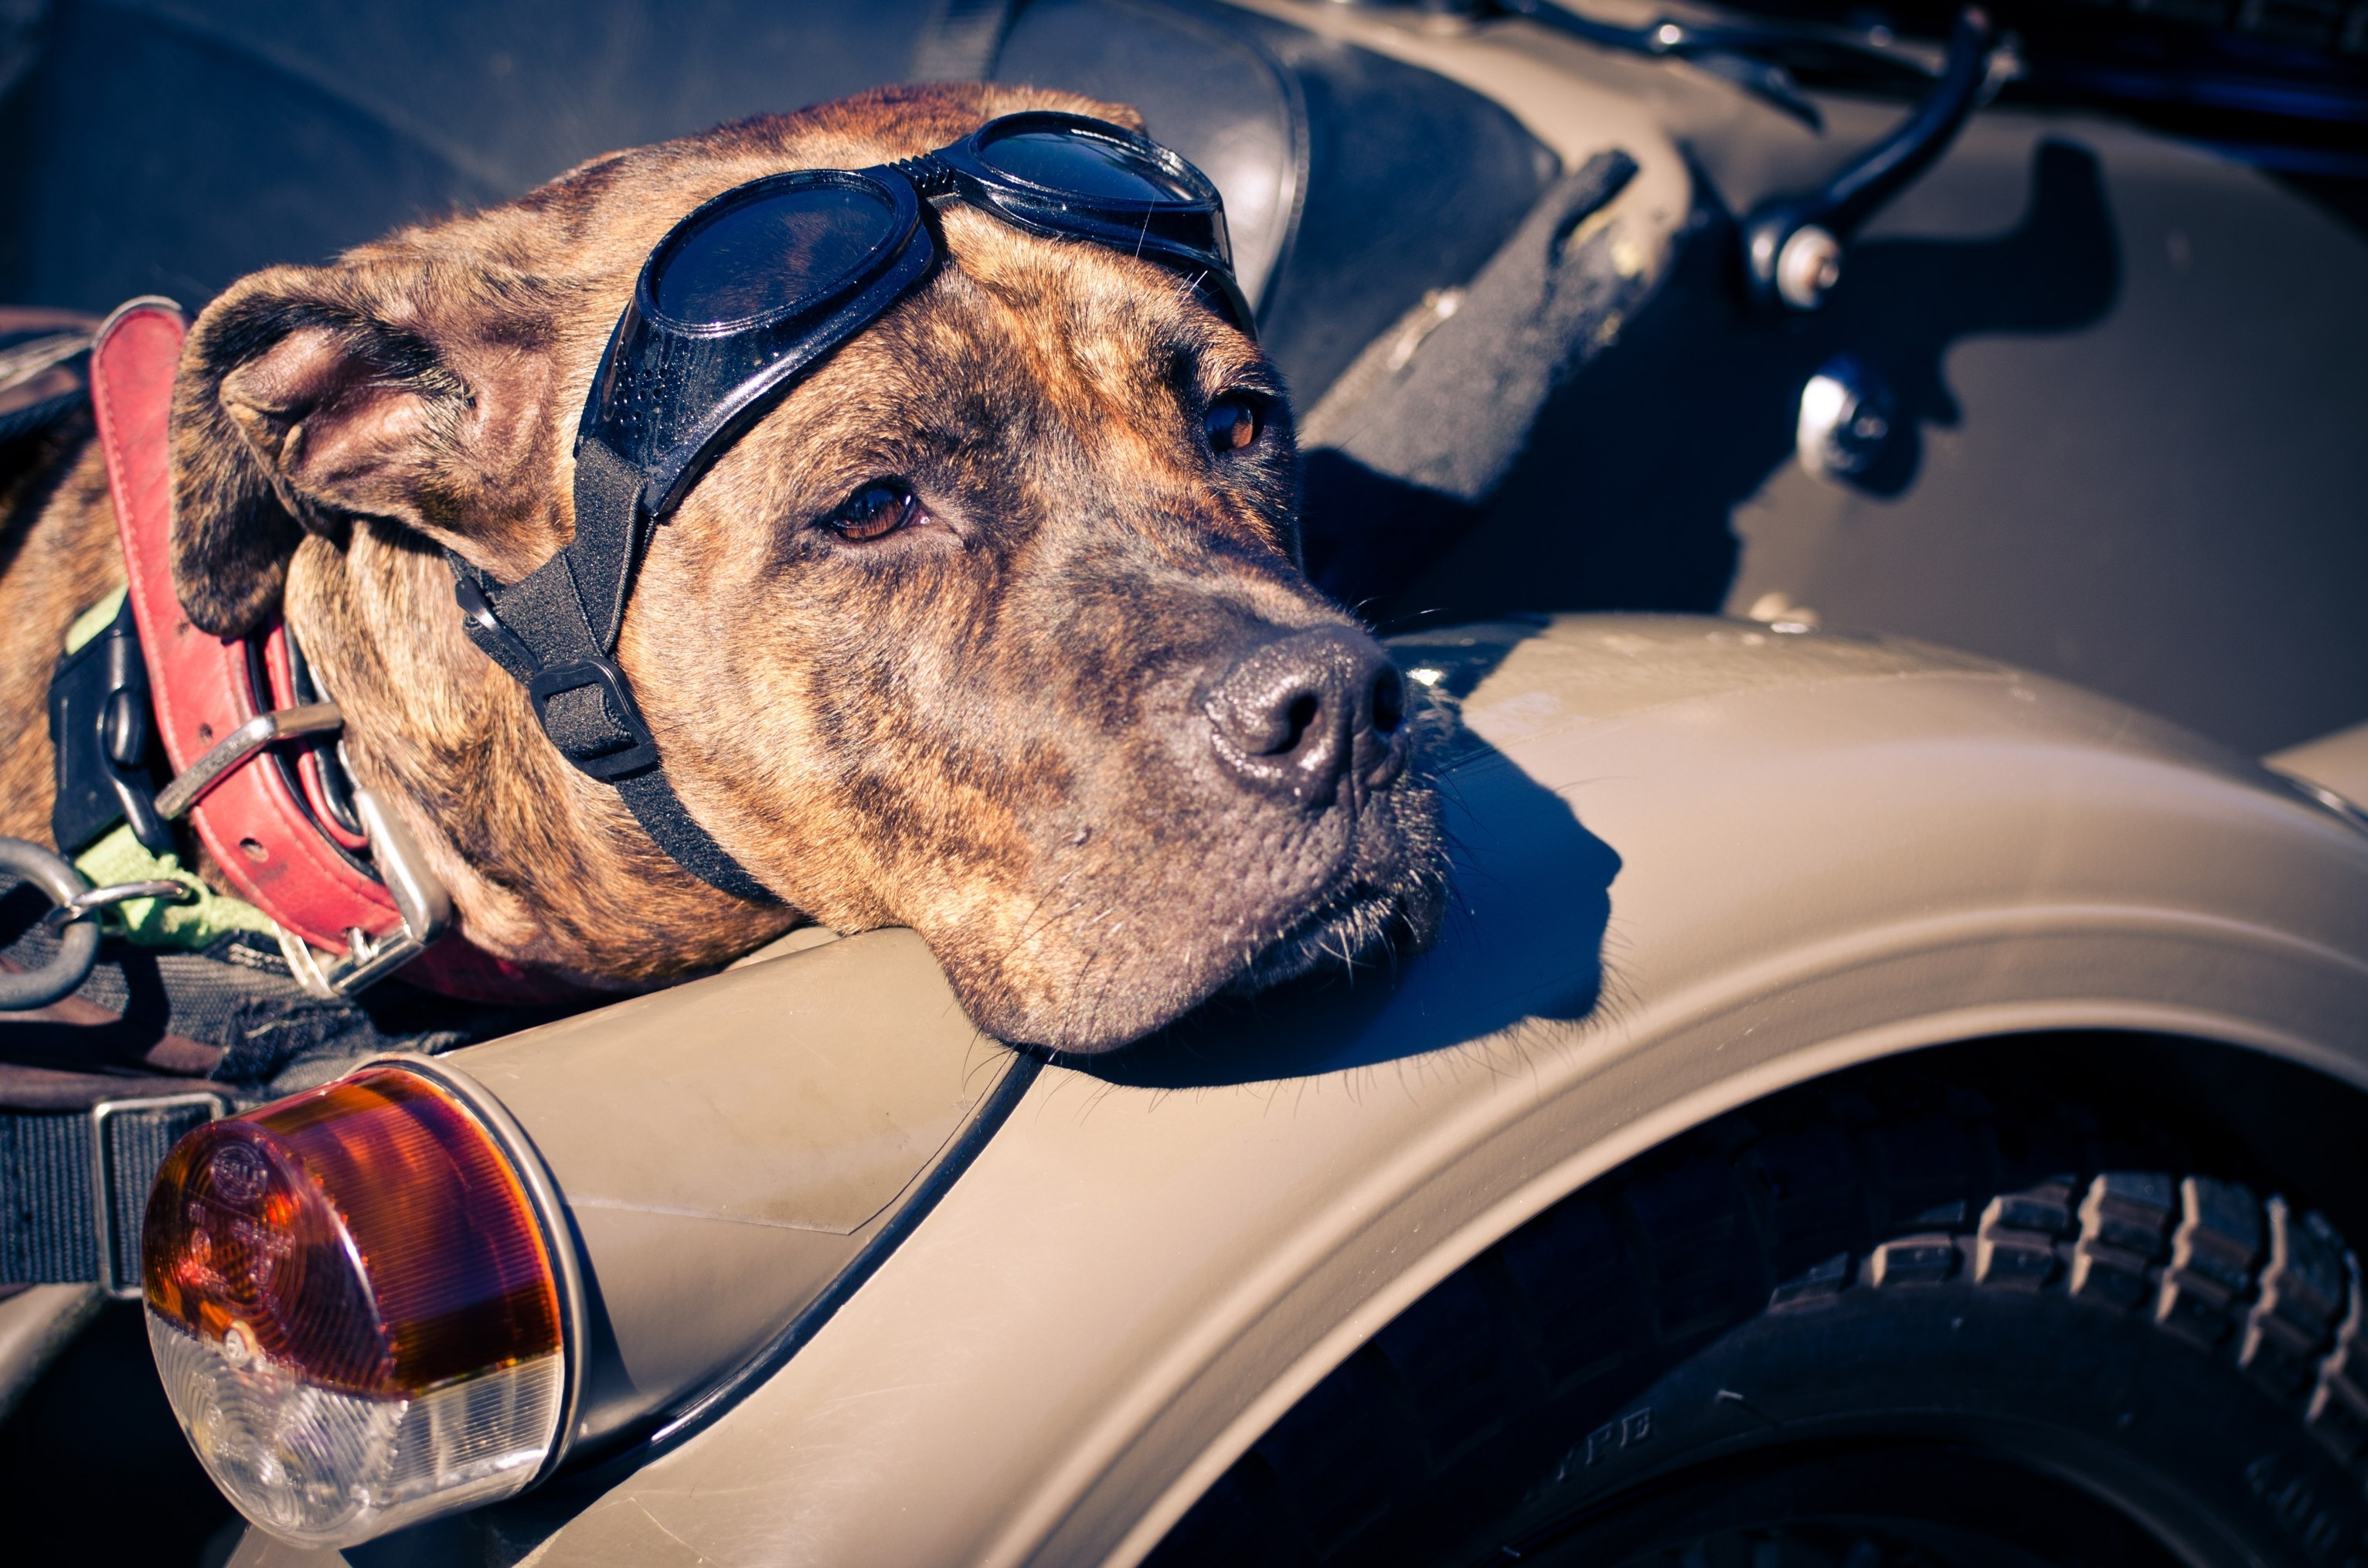 117374 download wallpaper Animals, Dog, Sight, Opinion, Glasses, Spectacles, Amstaff screensavers and pictures for free